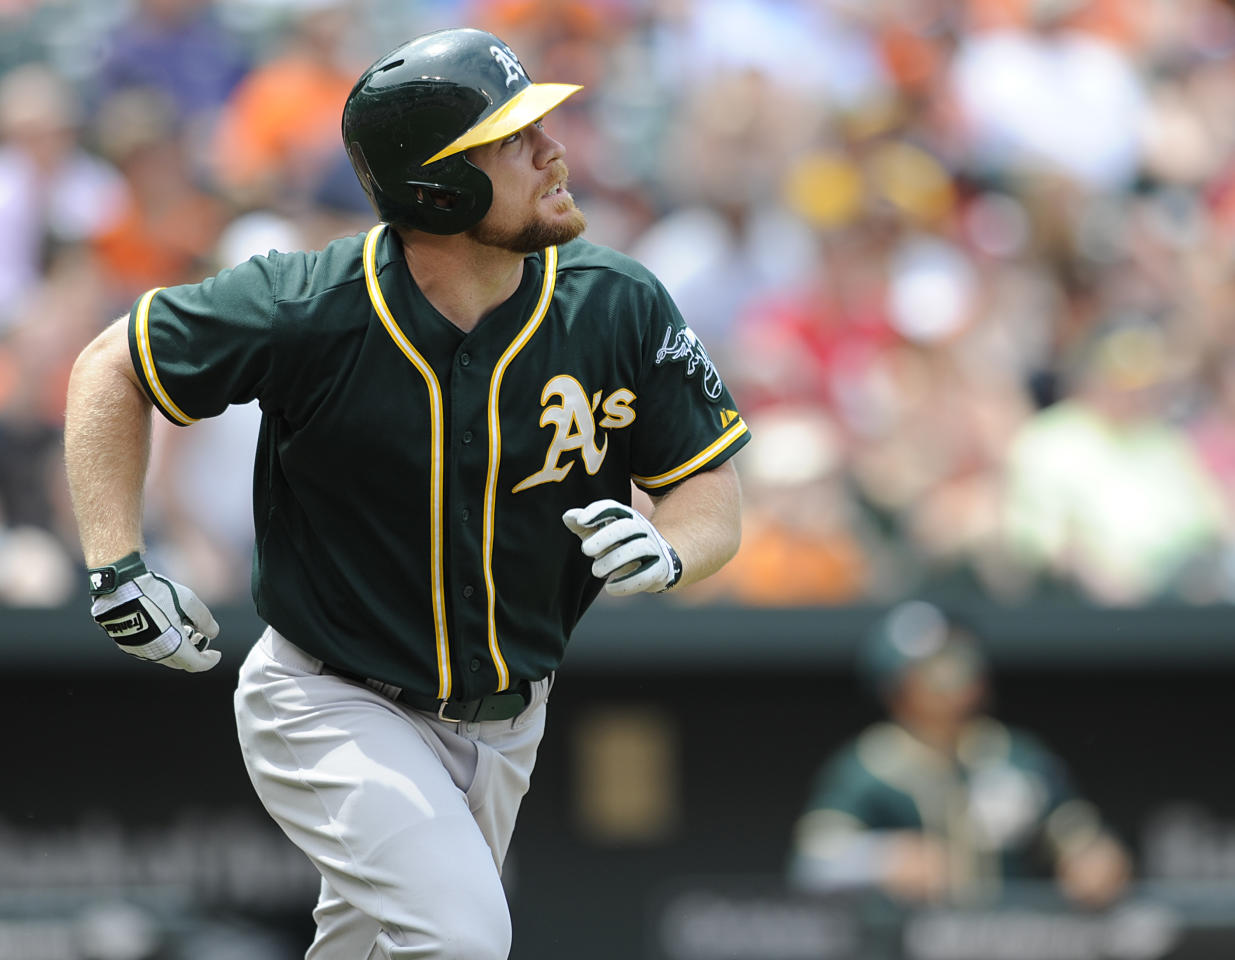 Oakland Athletic's Brandon Moss watches the flight of his grand slam against the Baltimore Orioles in the third inning of a baseball game, Sunday, June 8, 2014, in Baltimore. (AP Photo/Gail Burton)